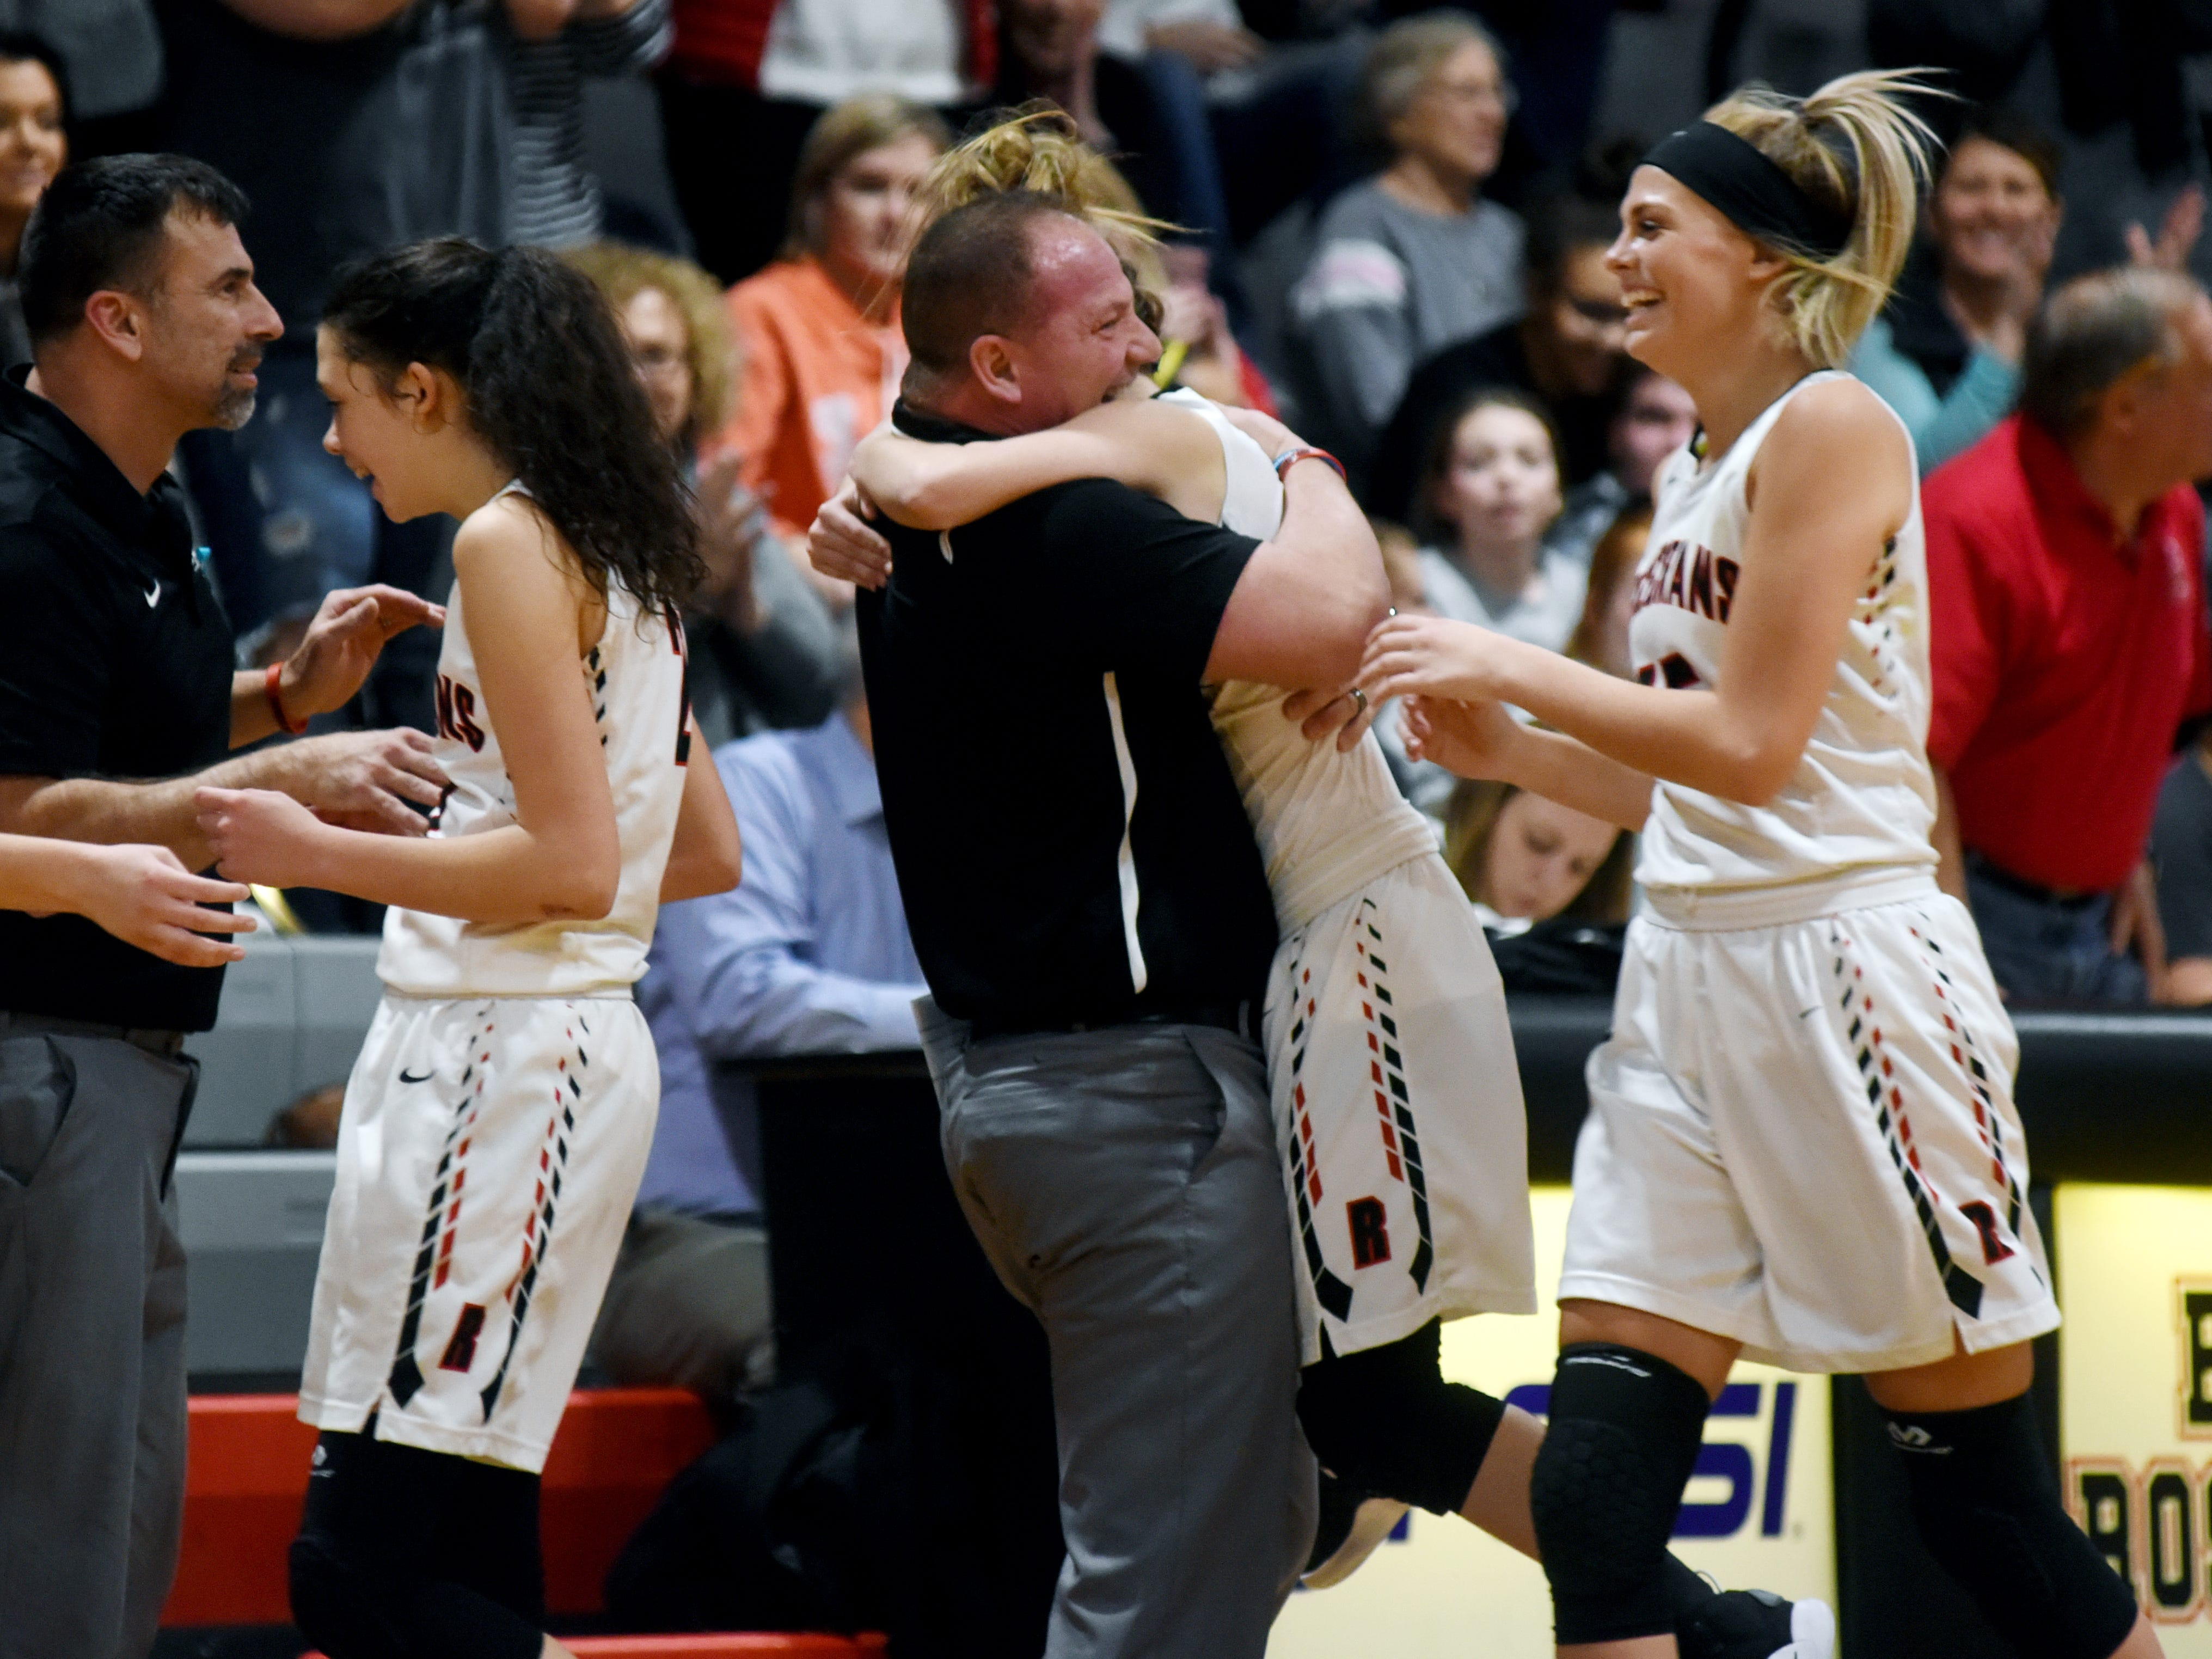 Rosecrans coach Vince Tolson gets a hug from Claire Creeks following the Bishops' 47-44 win against visiting Lakewood on Monday night at Rogge Gymnasium. Creeks scored a team-high 12 points and headed a defense that forced 26 turnovers.